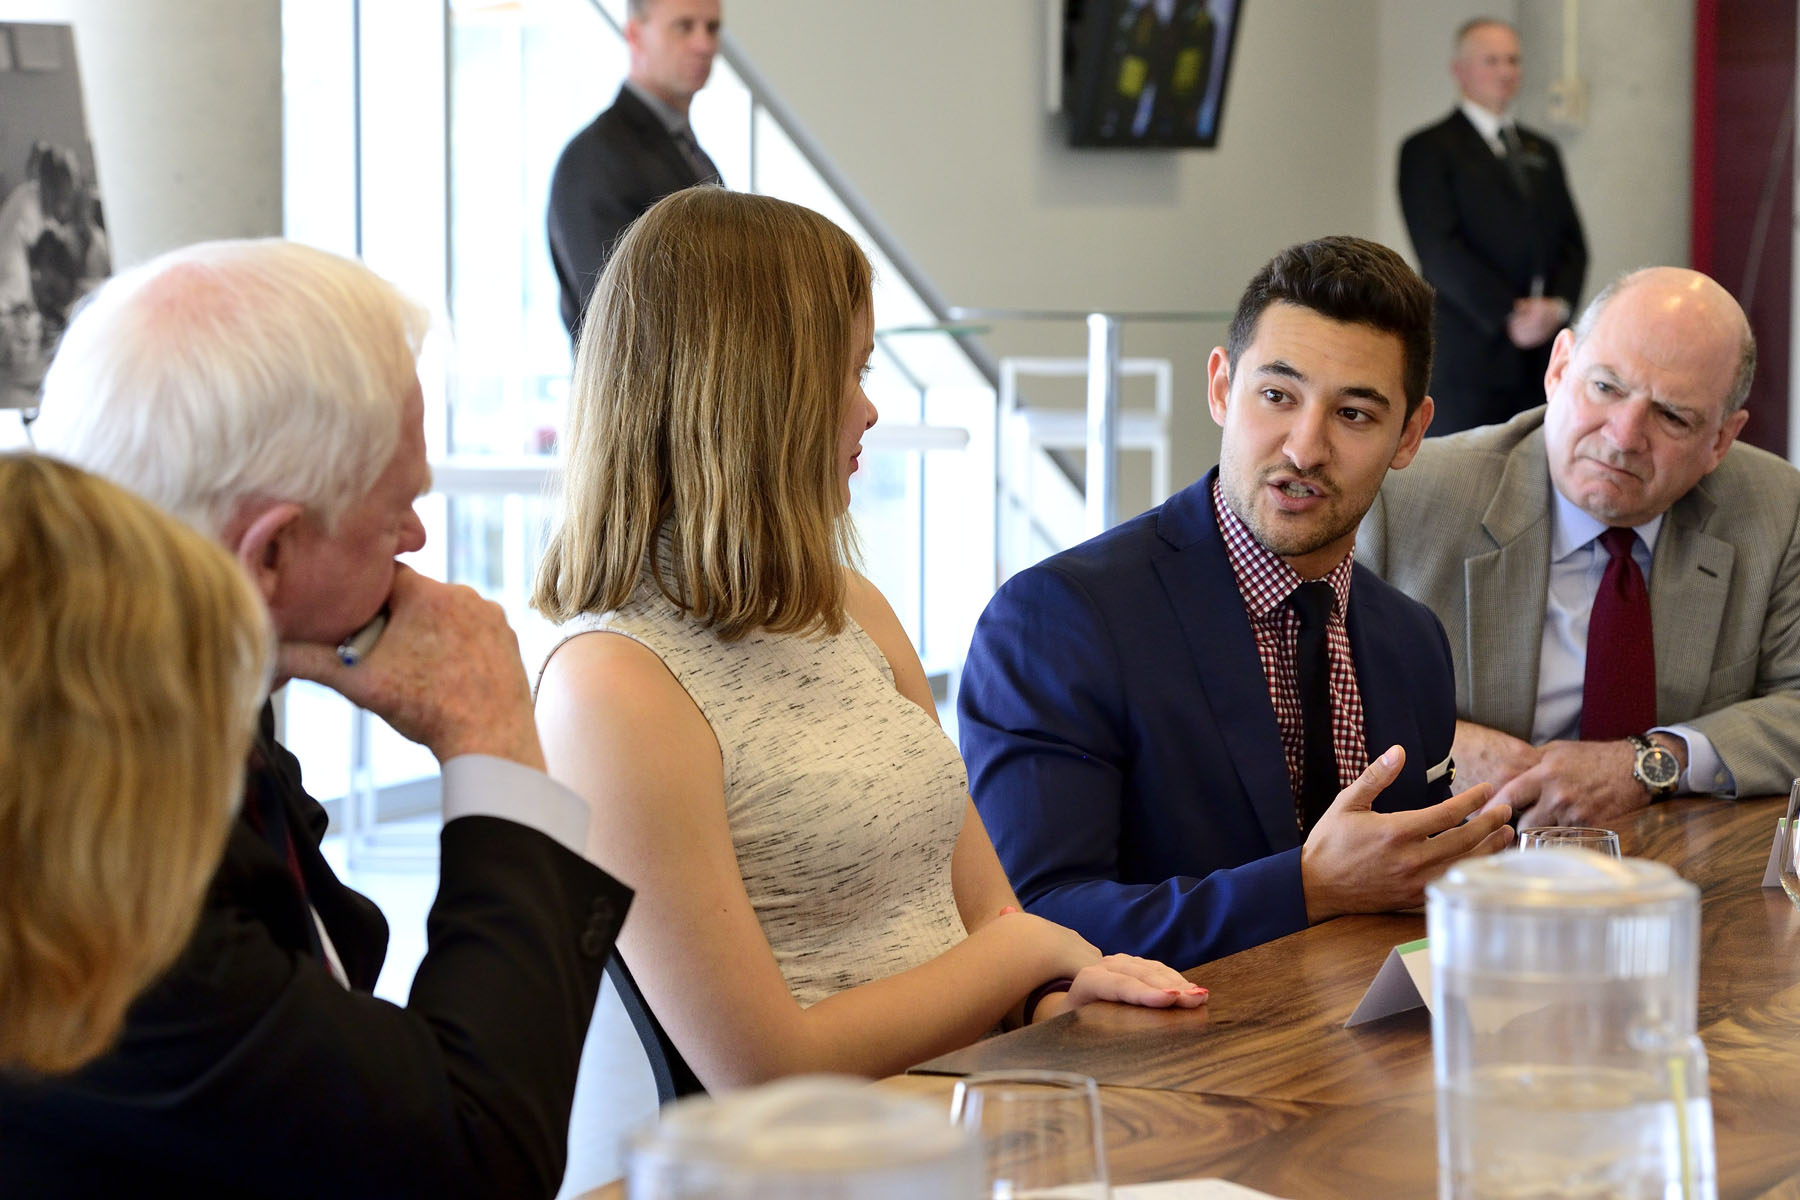 The Governor General met with students involved with Algonquin College's Volunteer Centre and participated in a round-table discussion about the students' volunteer experiences.